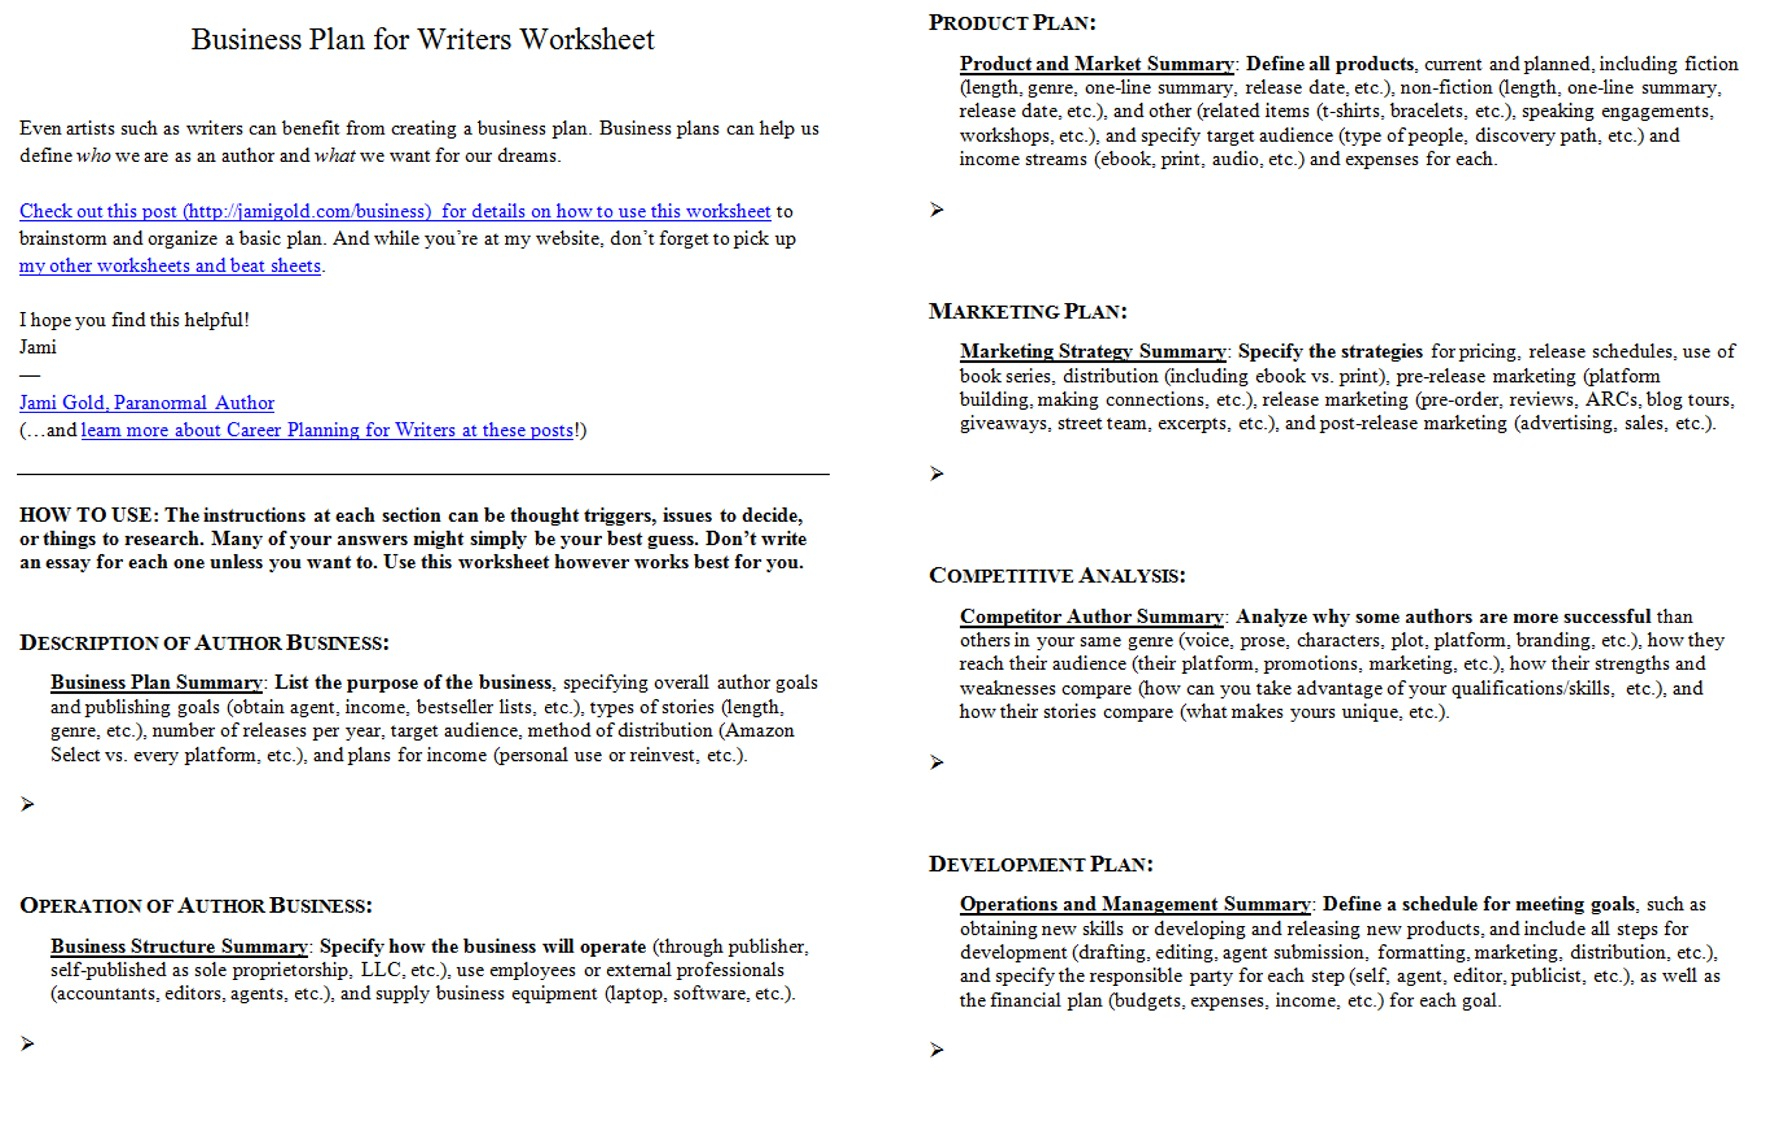 Aldiablosus  Winsome Worksheets For Writers  Jami Gold Paranormal Author With Handsome Screen Shot Of Both Pages Of The Business Plan For Writers Worksheet With Enchanting Getting To Know You Worksheet For Adults Also Free Following Directions Worksheets In Addition Add Subtract Multiply Divide Worksheet And Adding Worksheets For St Grade As Well As Islamic Worksheets Additionally Free Printable Anger Management Worksheets For Kids From Jamigoldcom With Aldiablosus  Handsome Worksheets For Writers  Jami Gold Paranormal Author With Enchanting Screen Shot Of Both Pages Of The Business Plan For Writers Worksheet And Winsome Getting To Know You Worksheet For Adults Also Free Following Directions Worksheets In Addition Add Subtract Multiply Divide Worksheet From Jamigoldcom